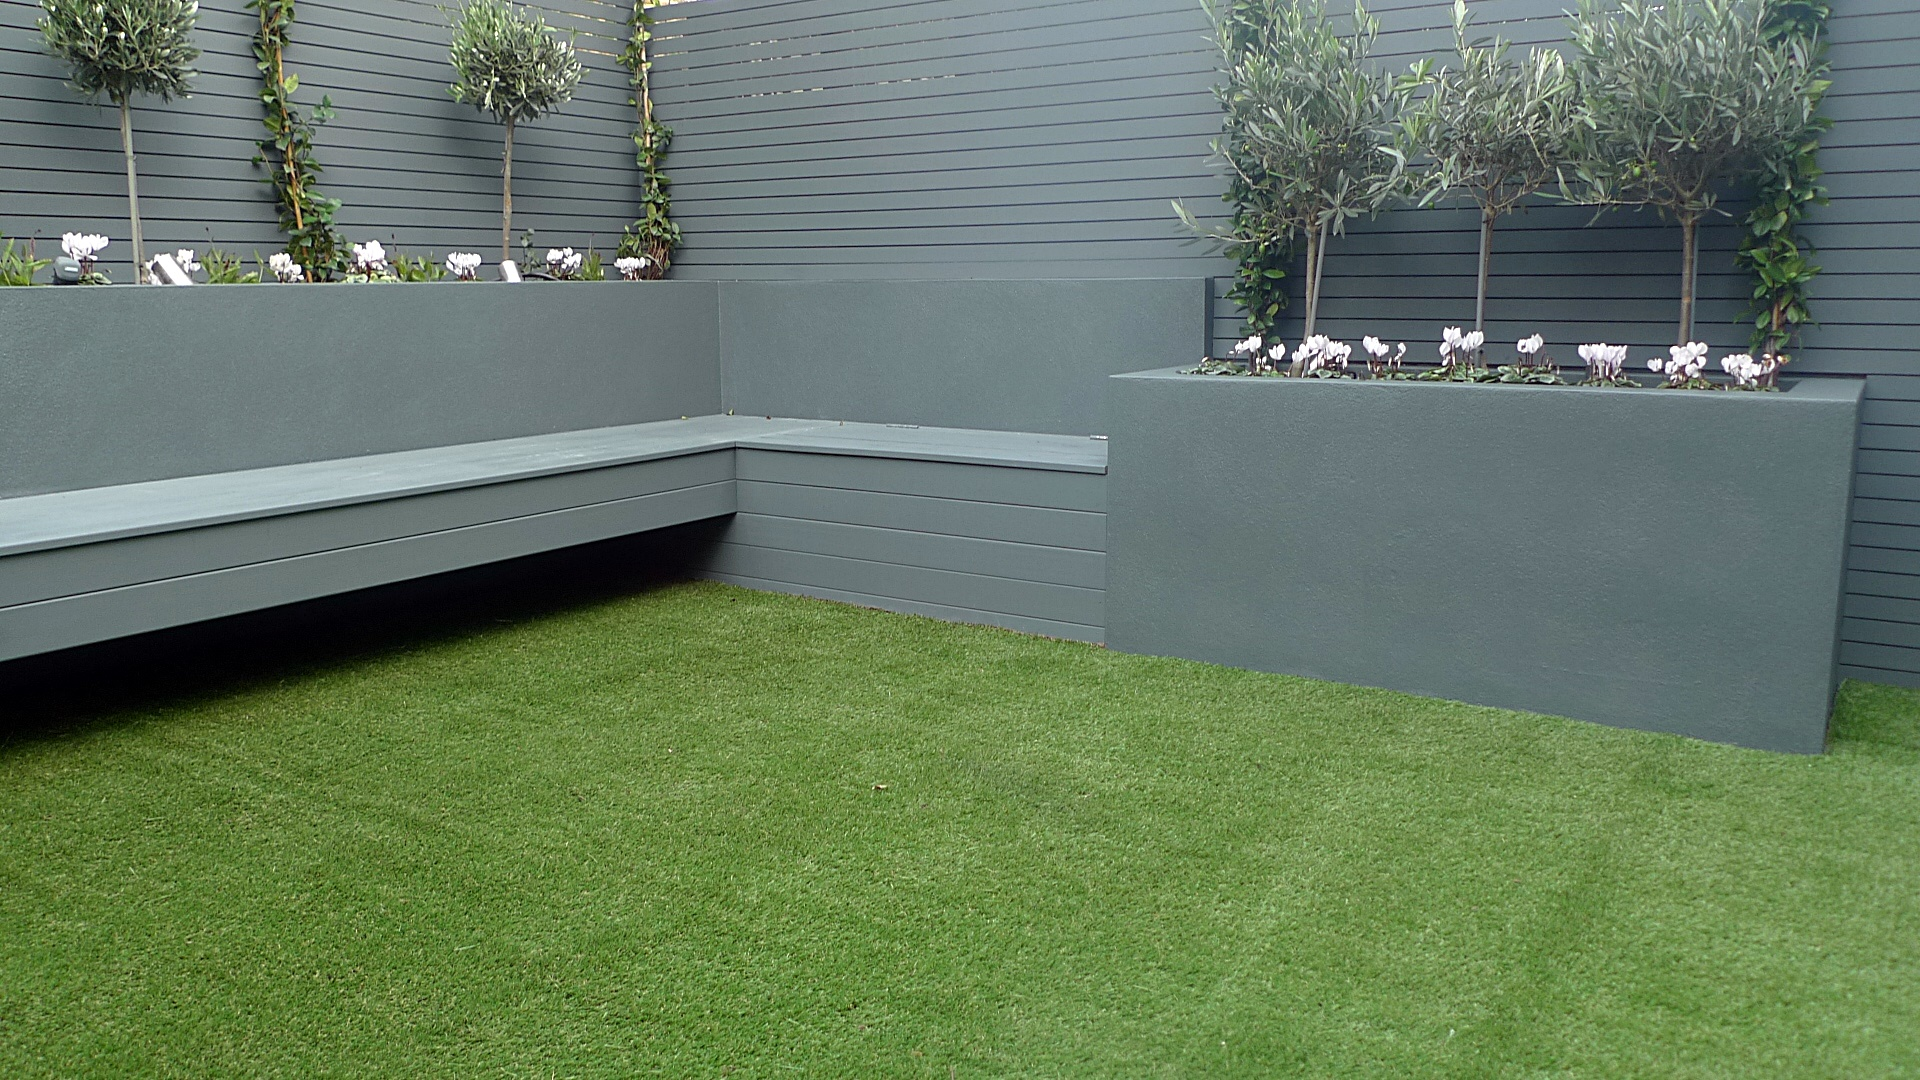 Grey colour scheme raised beds artificial grass olives agapanthus porcelain grey tiles grey Floating bench lighting Balham Wandsworth Clapham Battersea Vauxhall Fulham Chelsea London